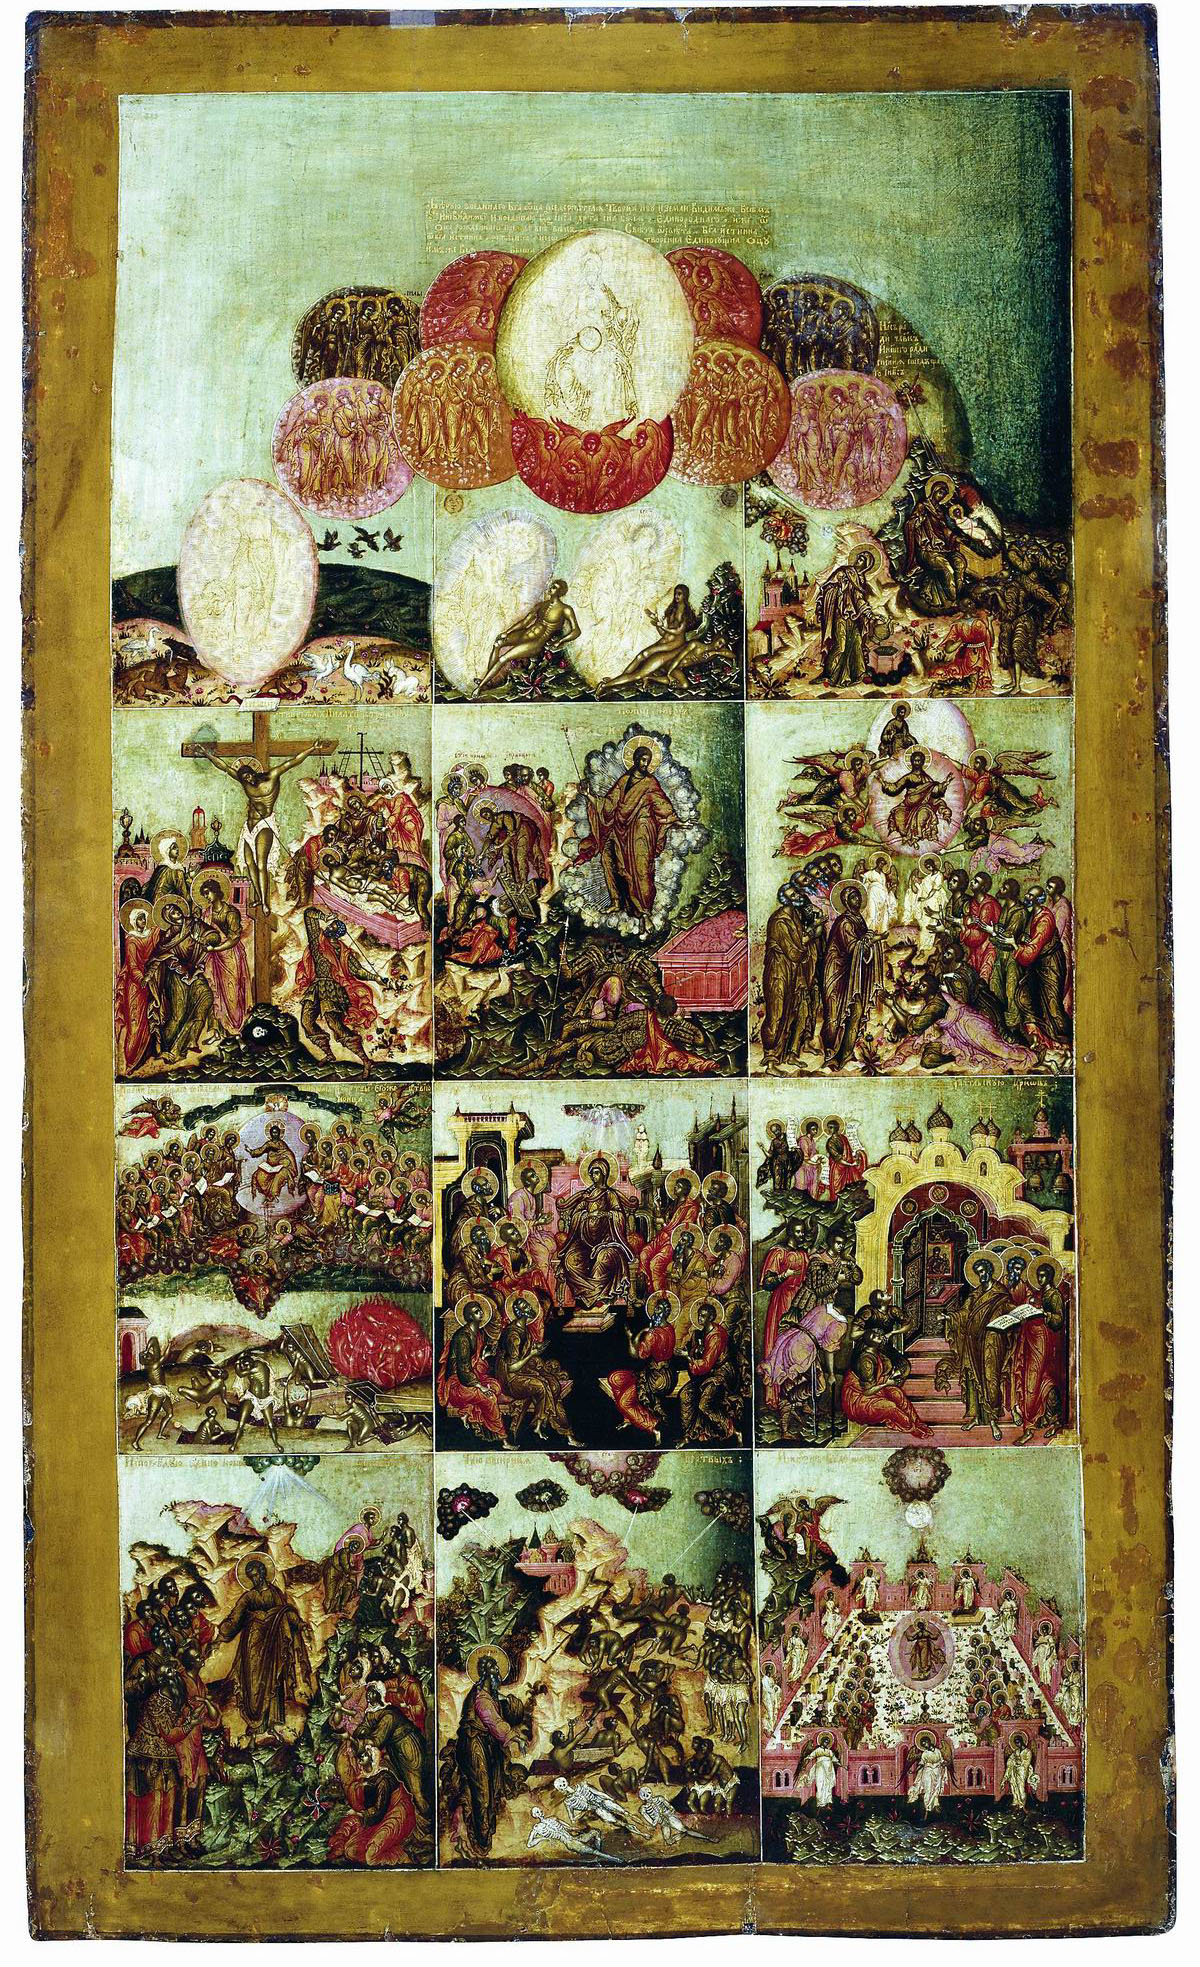 https://upload.wikimedia.org/wikipedia/commons/a/aa/Creed_of_faith_%28Ushakov_and_Nikitin%2C_1668_GRM%29.jpeg